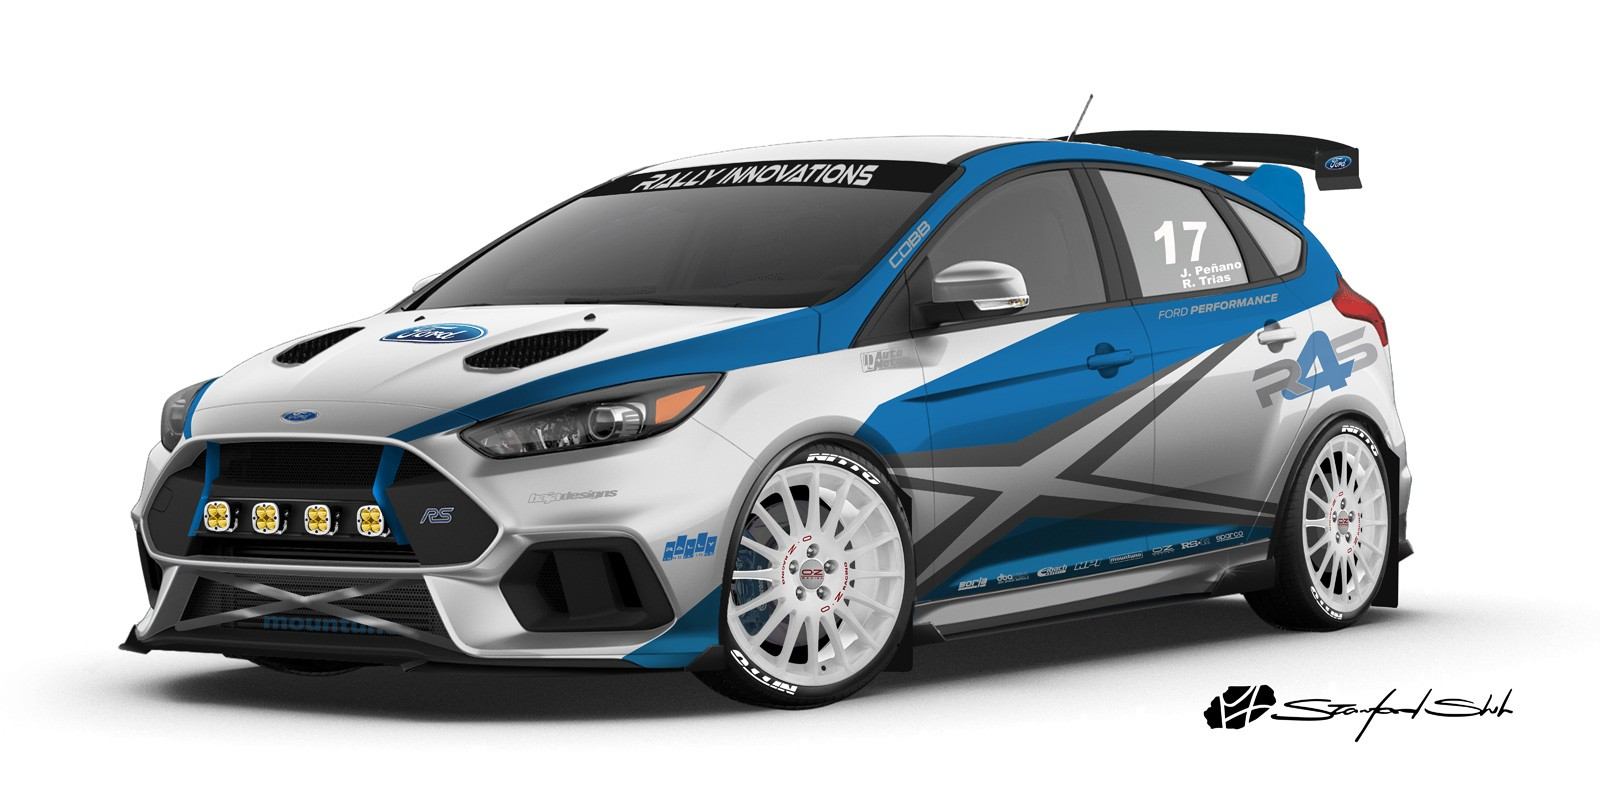 ... Ford Focus RS SEMA project  sc 1 st  Autoevolution & Ford Focus Roof Opened like a Tin Can by Air Freshener Explosion ... markmcfarlin.com